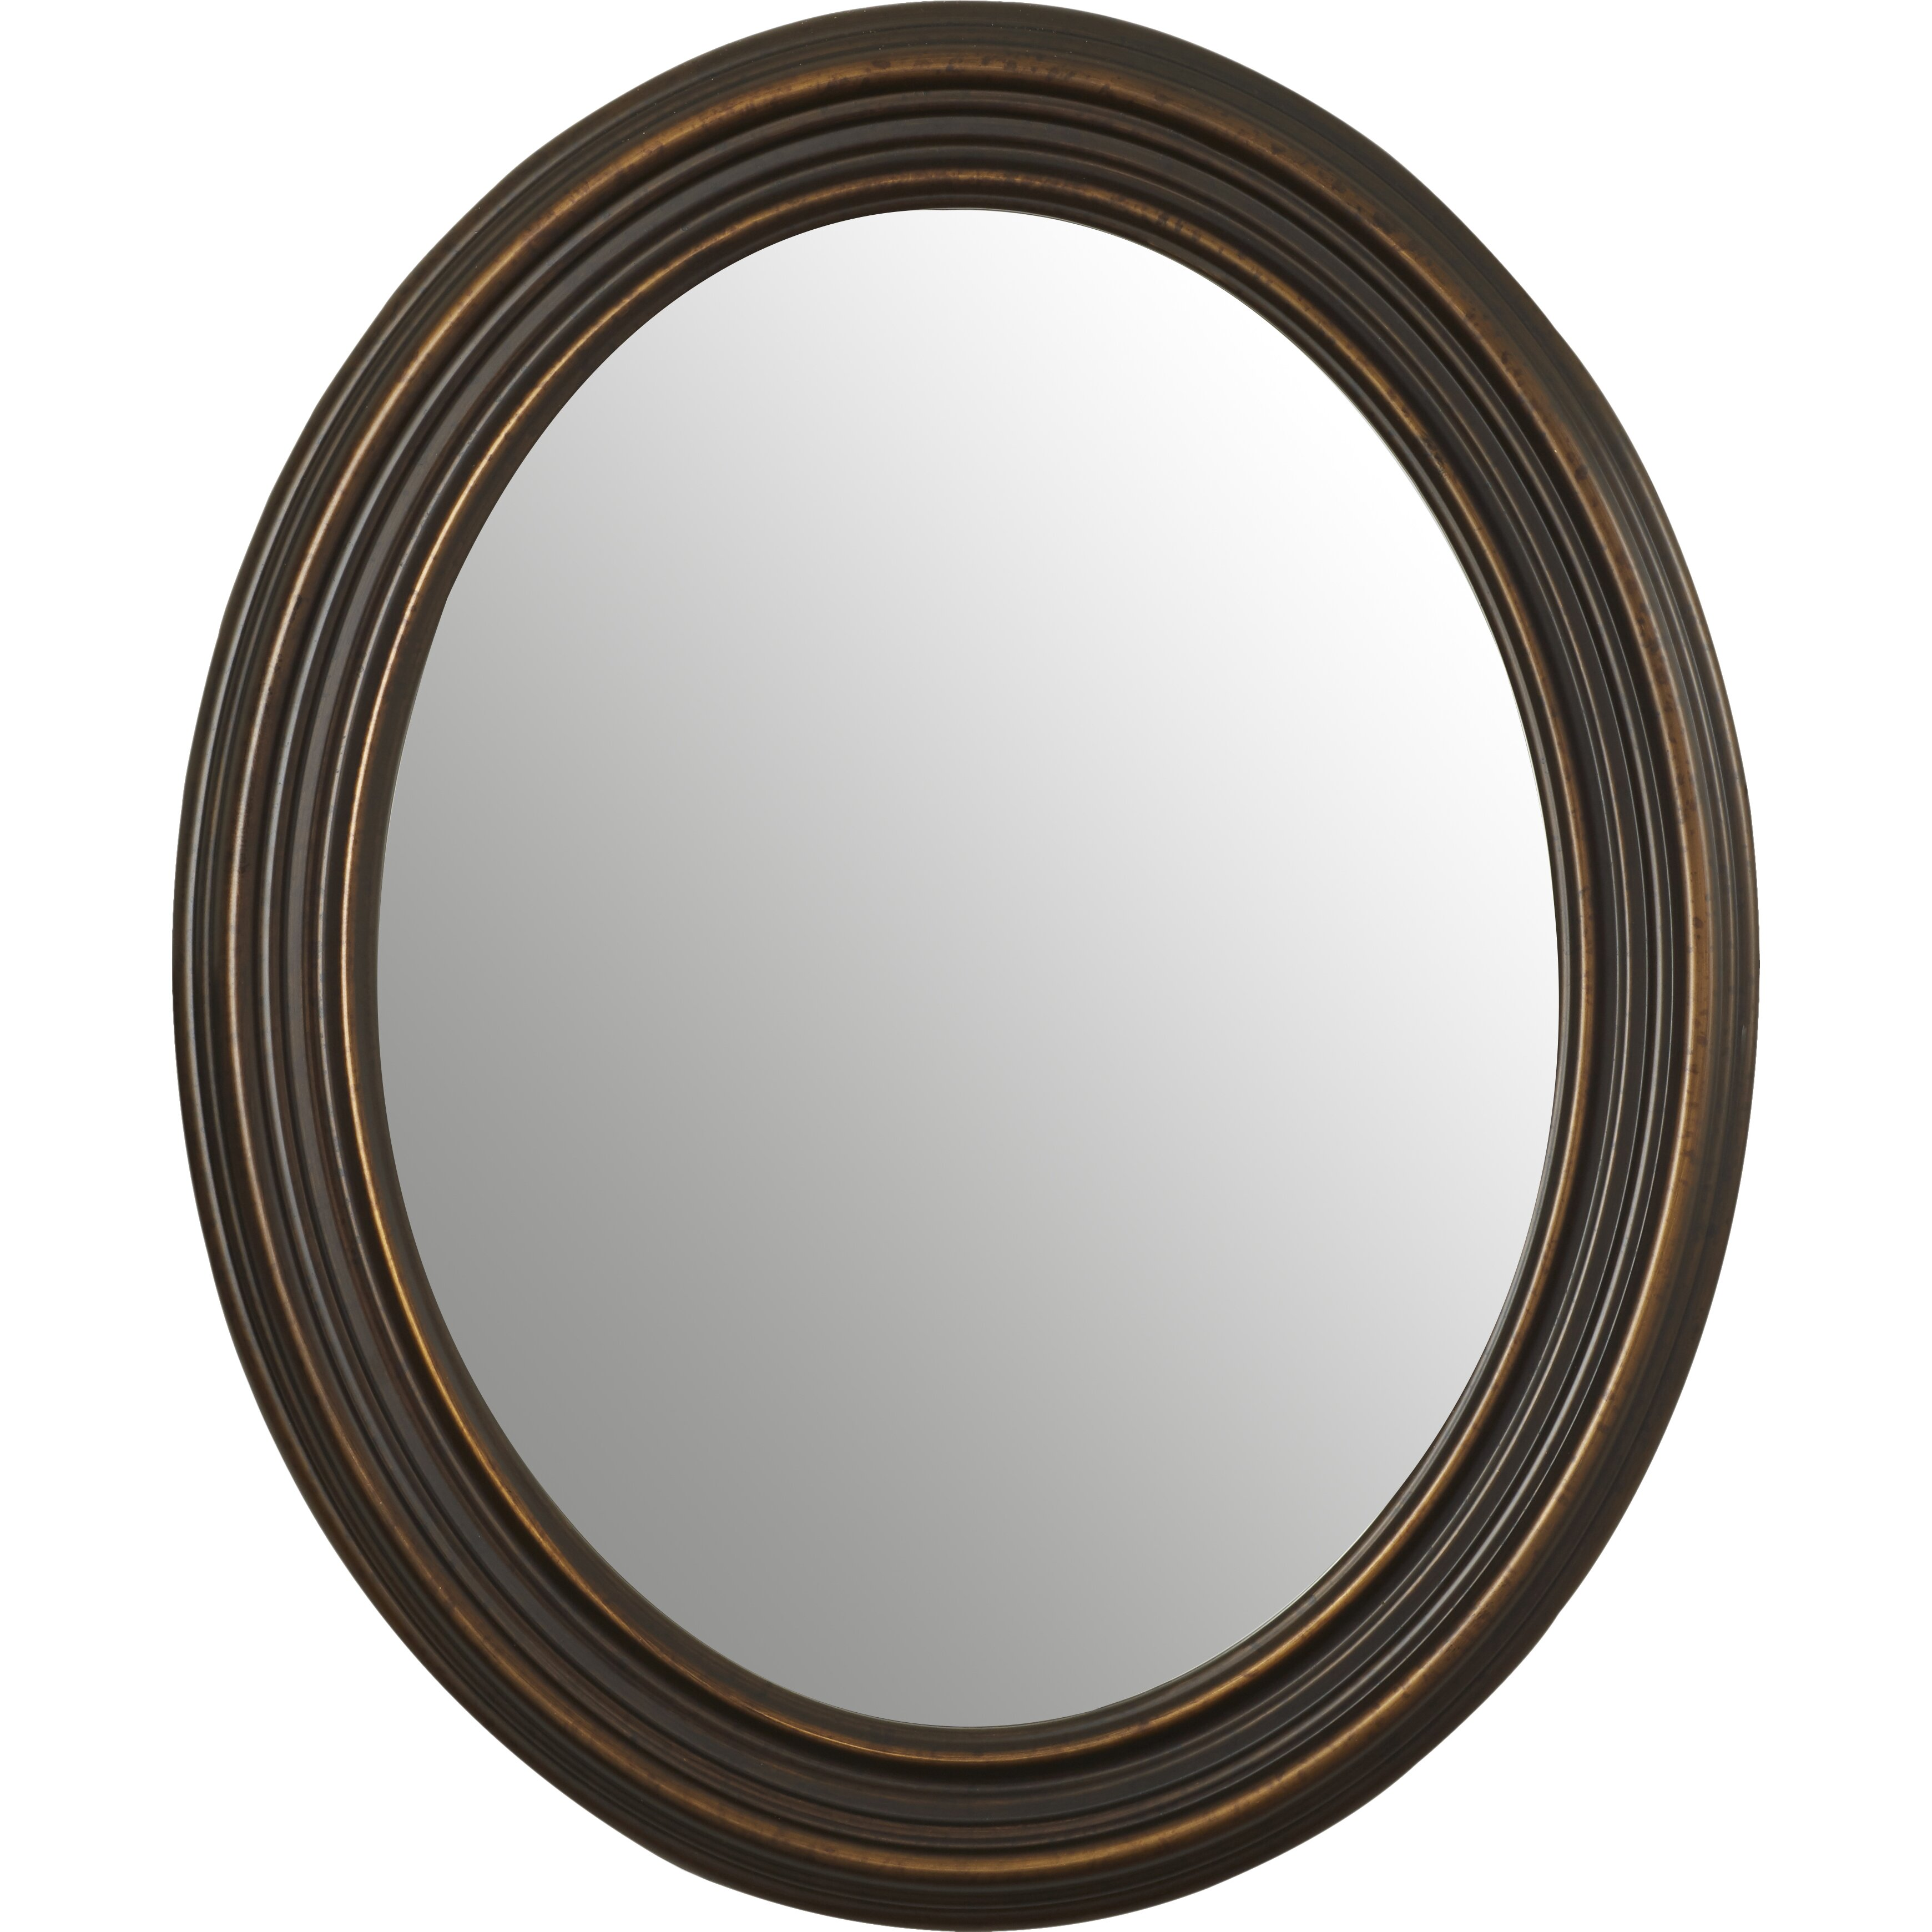 Darby home co burnes oval wall mirror reviews wayfair for Oval wall mirror